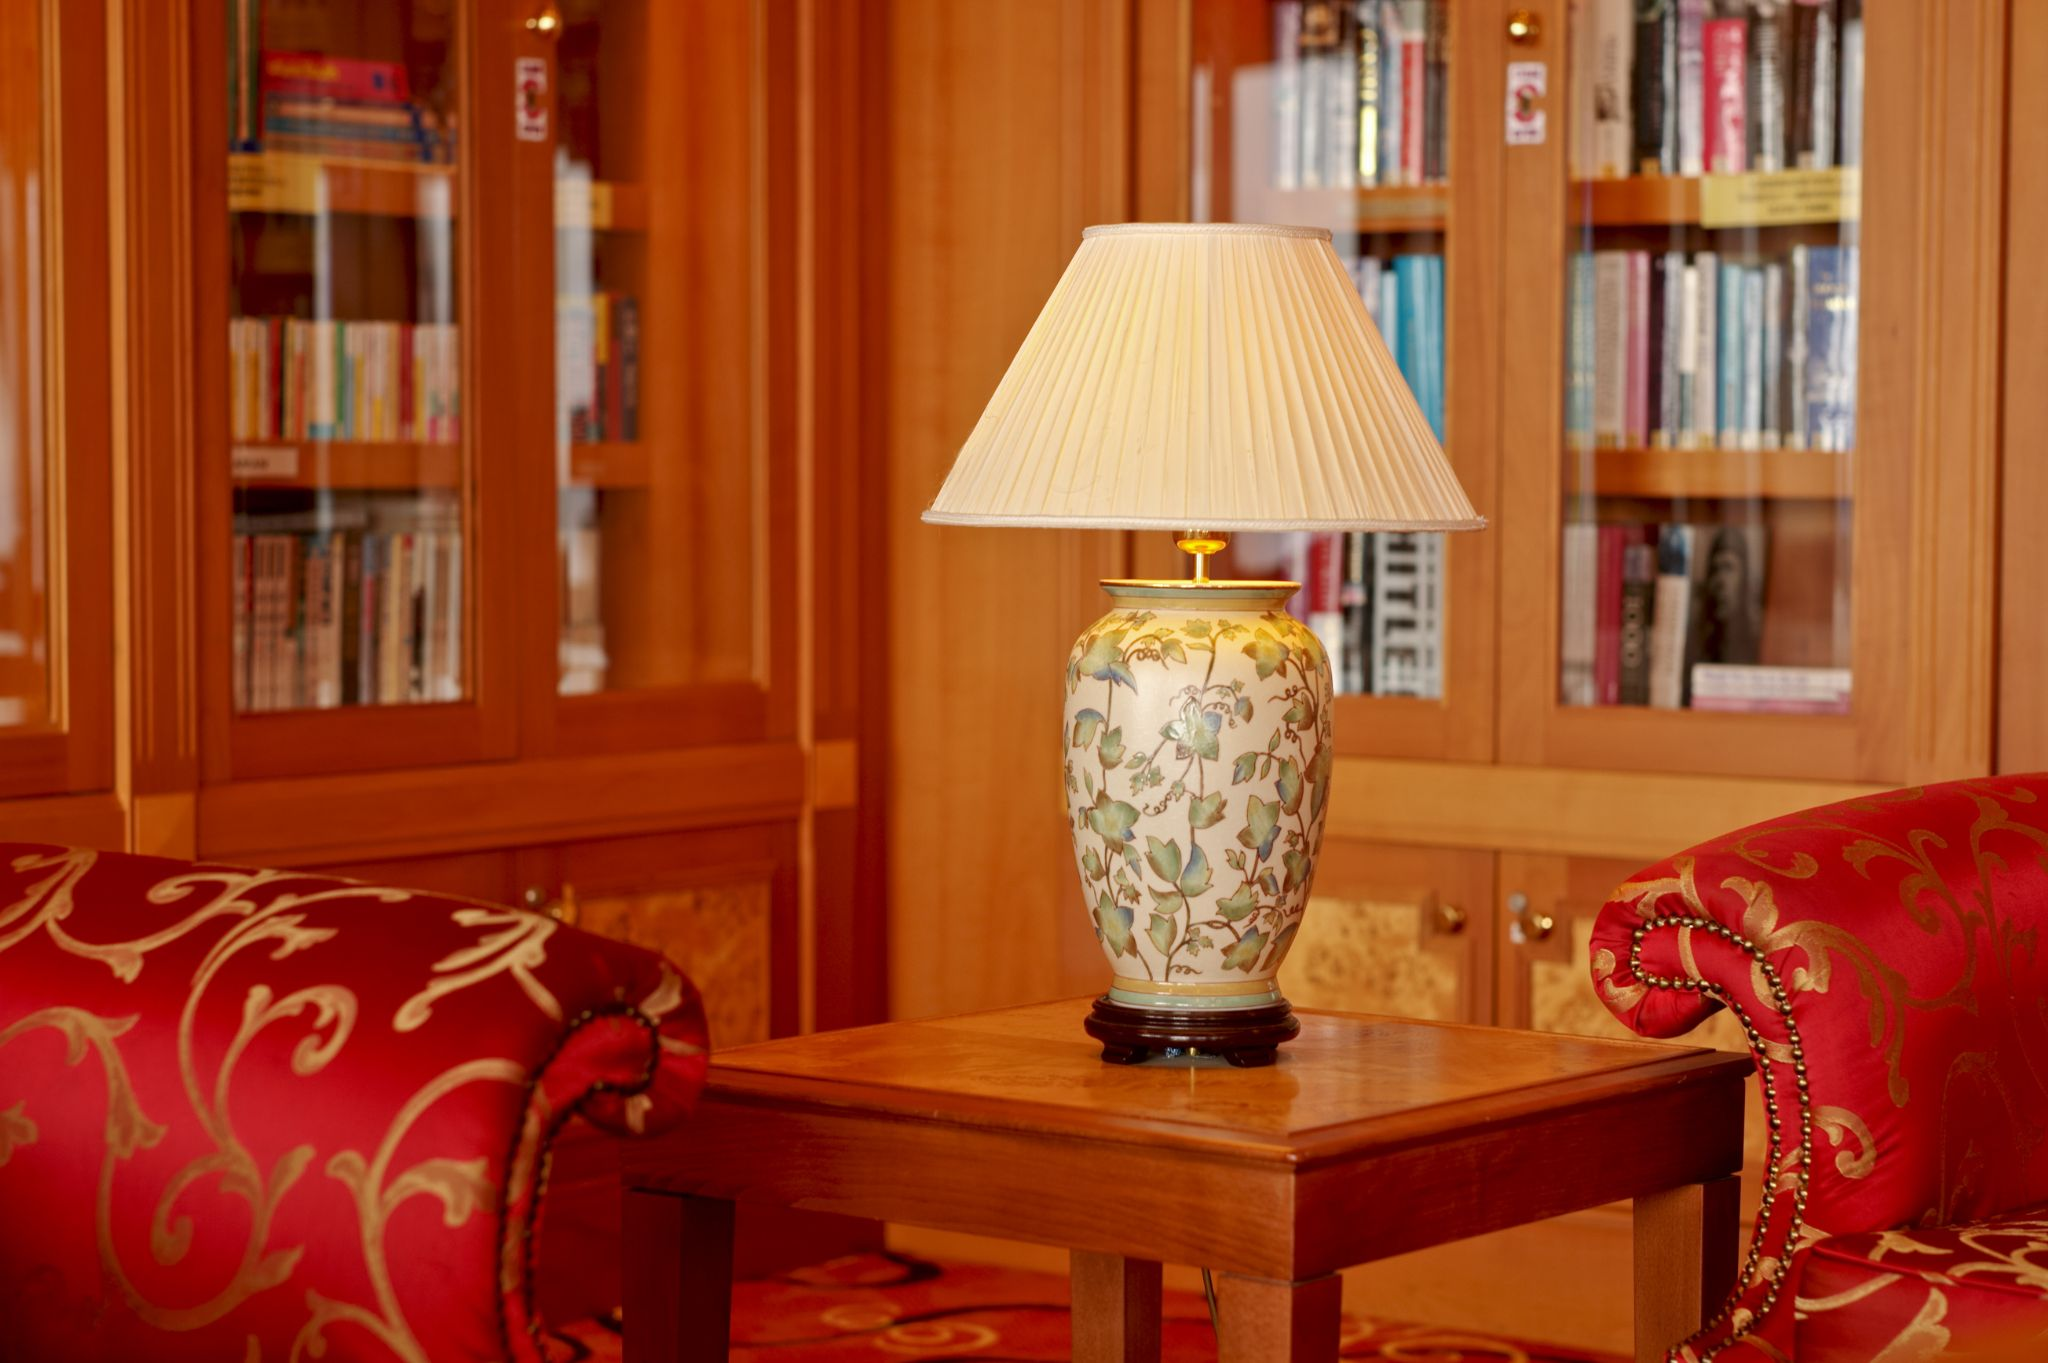 Table lamp in the library of the Serenade of the Seas by Victor Kam